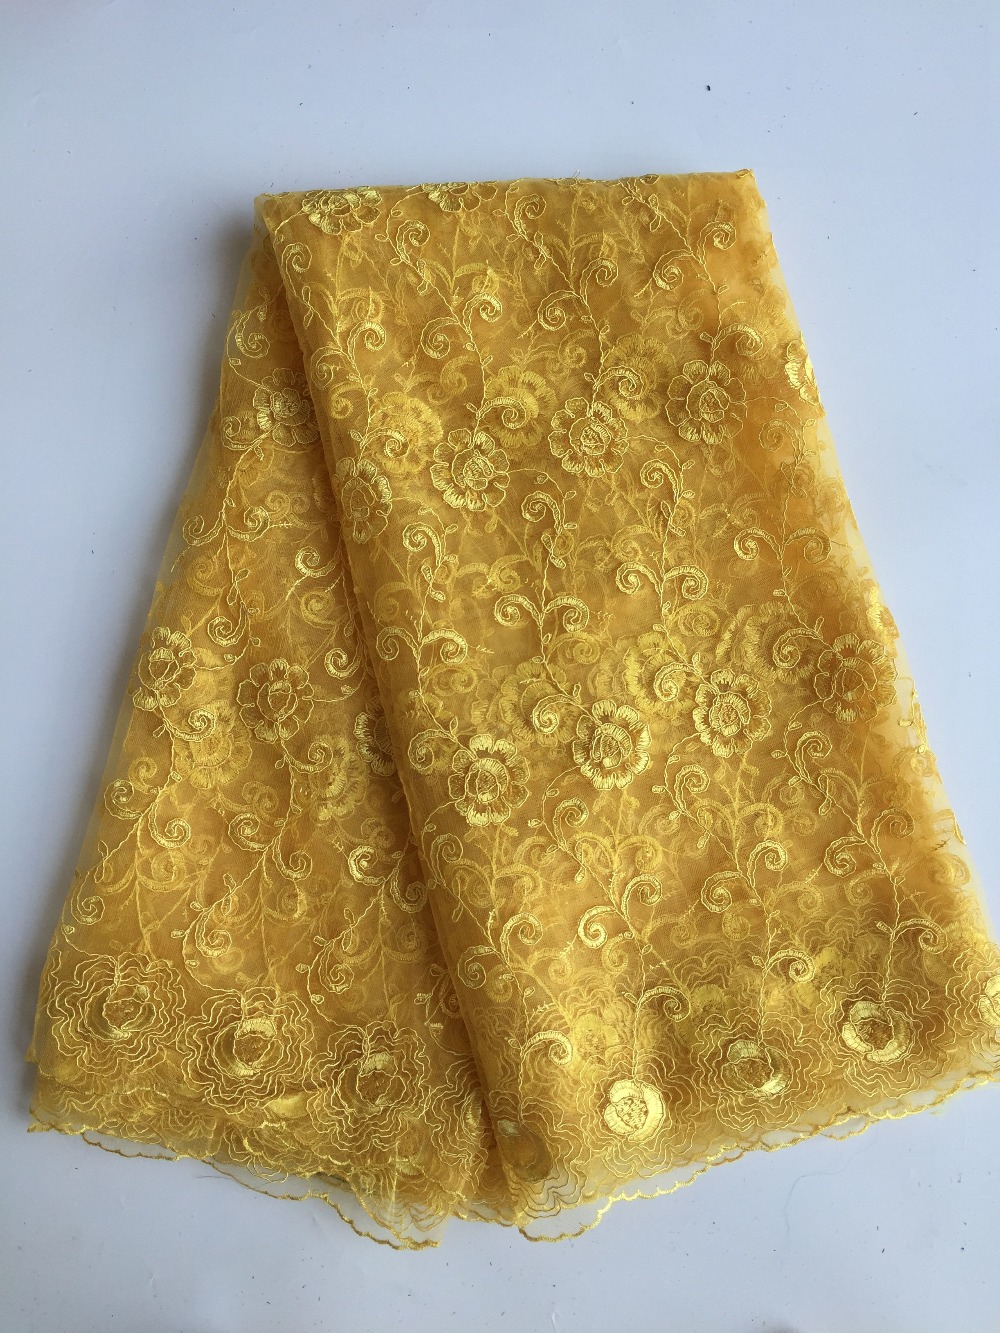 New Arrival African Lace Fabric High Quality Embroidered French net Fabric Swiss Voile Lace for women dress(China (Mainland))